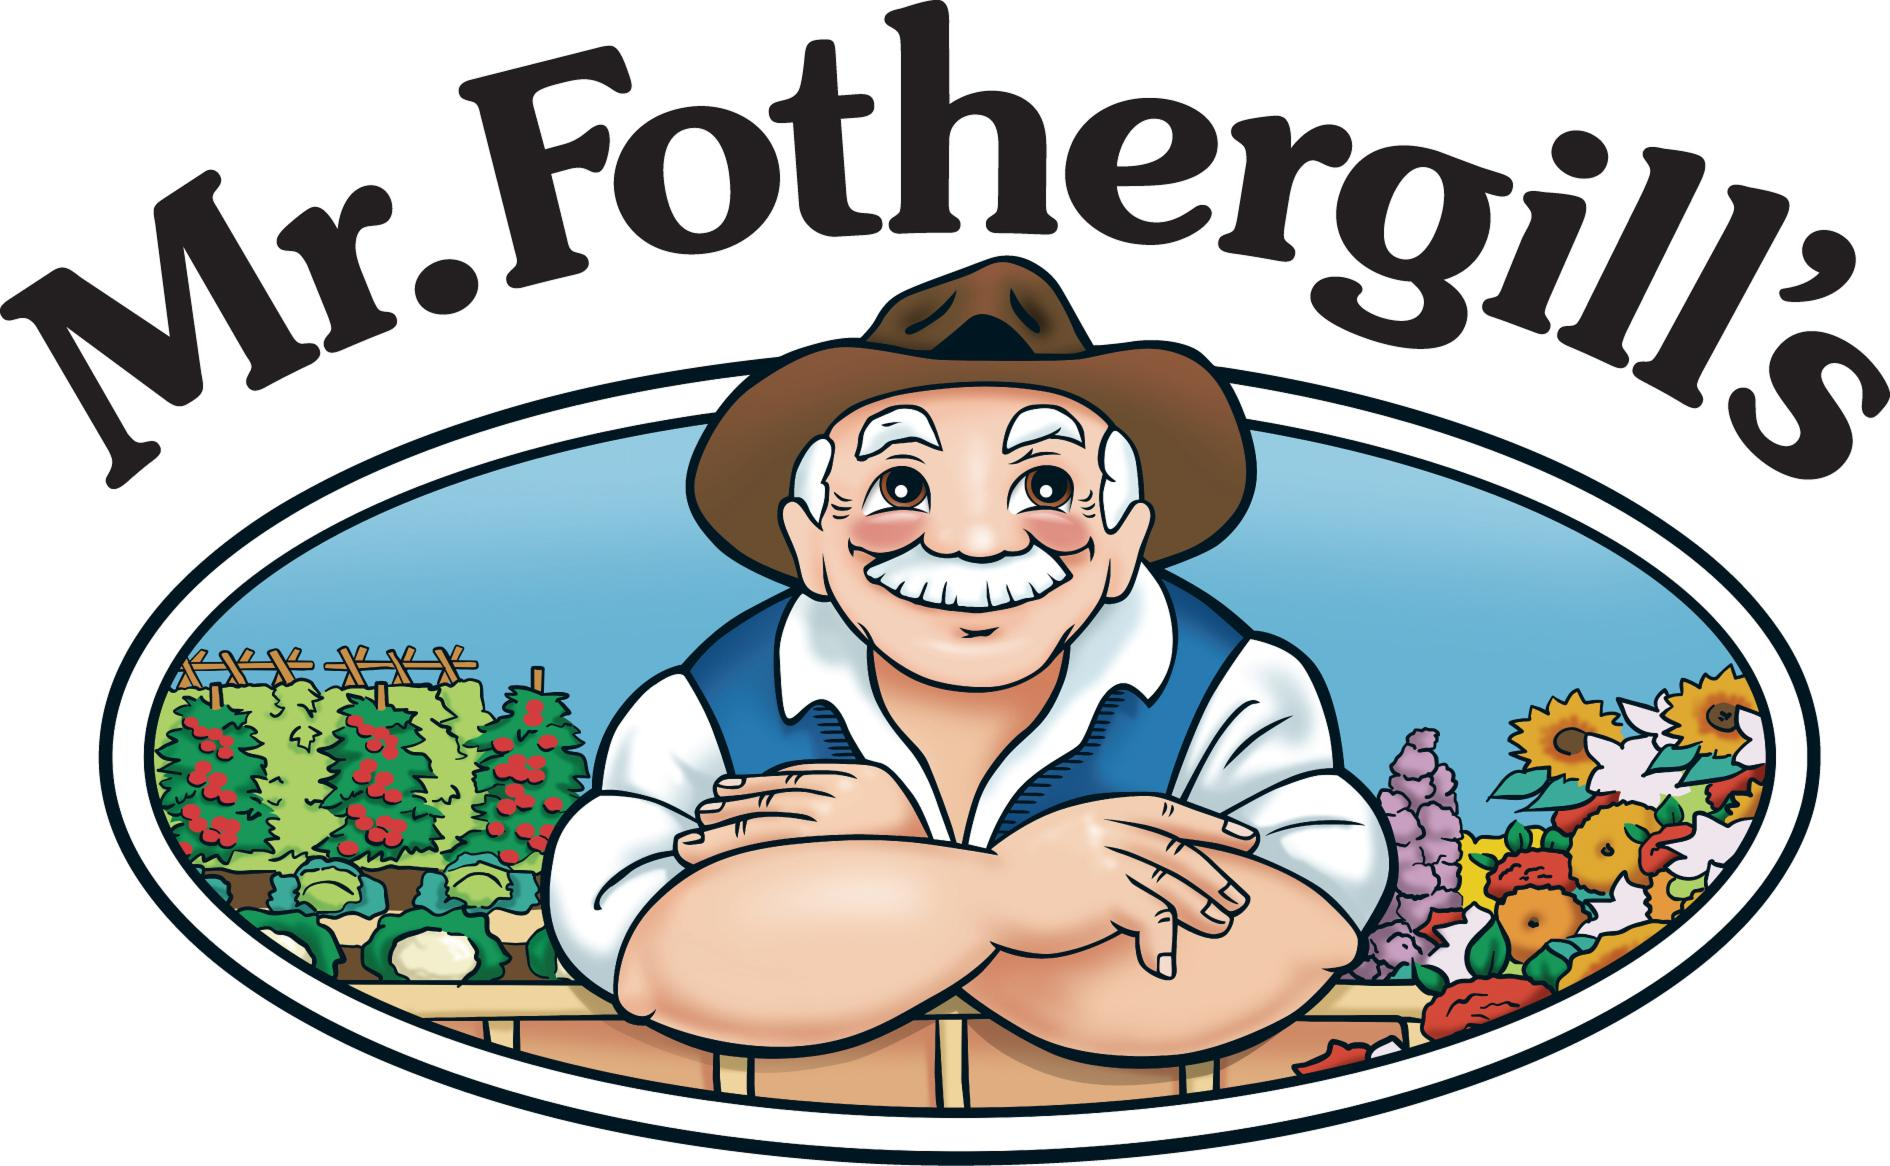 Mr Fothergills Seeds Limited